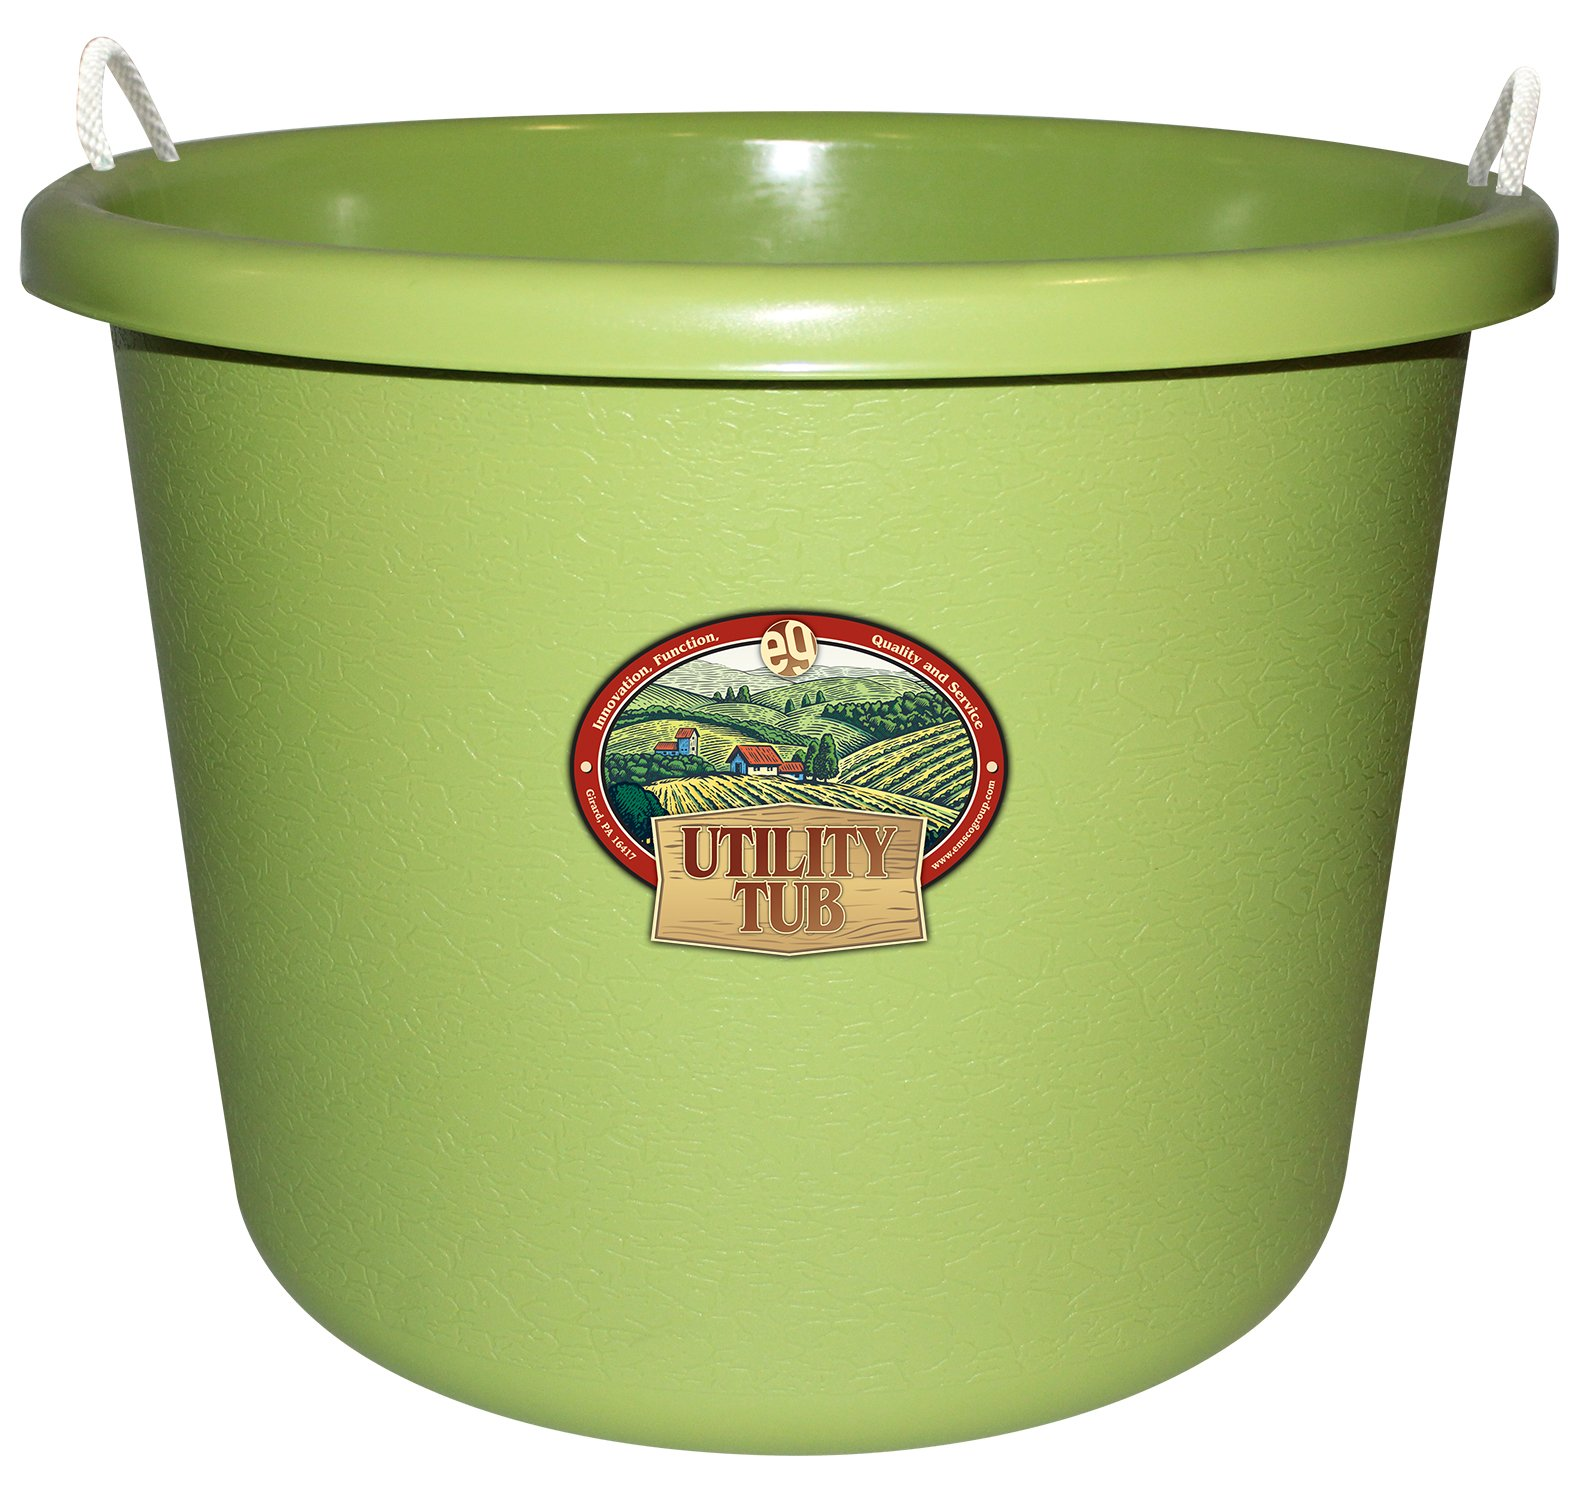 Emsco Group 2653 Utility Tub-17.5 Gallon Bucket-for Maintenance Cleaning Growing, Sage Green